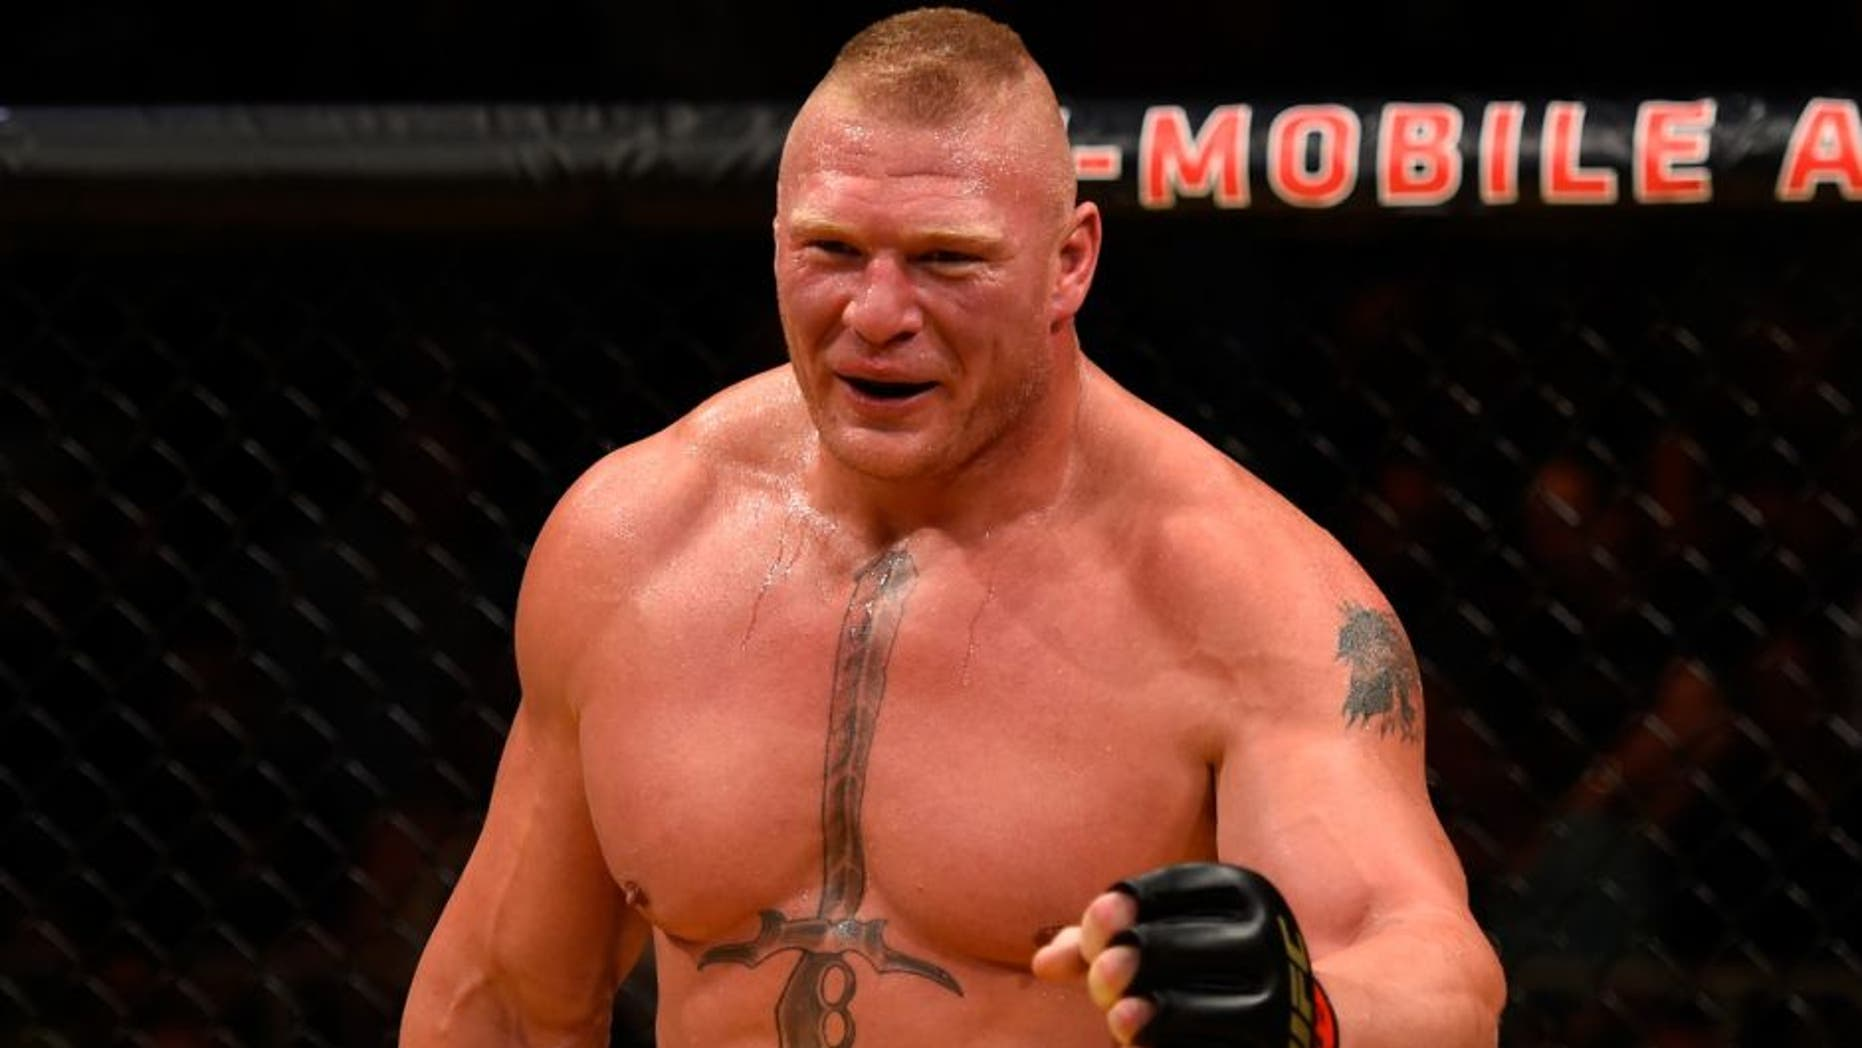 LAS VEGAS, NV - JULY 09: Brock Lesnar prepares for round two against Mark Hunt of New Zealand in their heavyweight bout during the UFC 200 event on July 9, 2016 at T-Mobile Arena in Las Vegas, Nevada. (Photo by Josh Hedges/Zuffa LLC/Zuffa LLC via Getty Images)